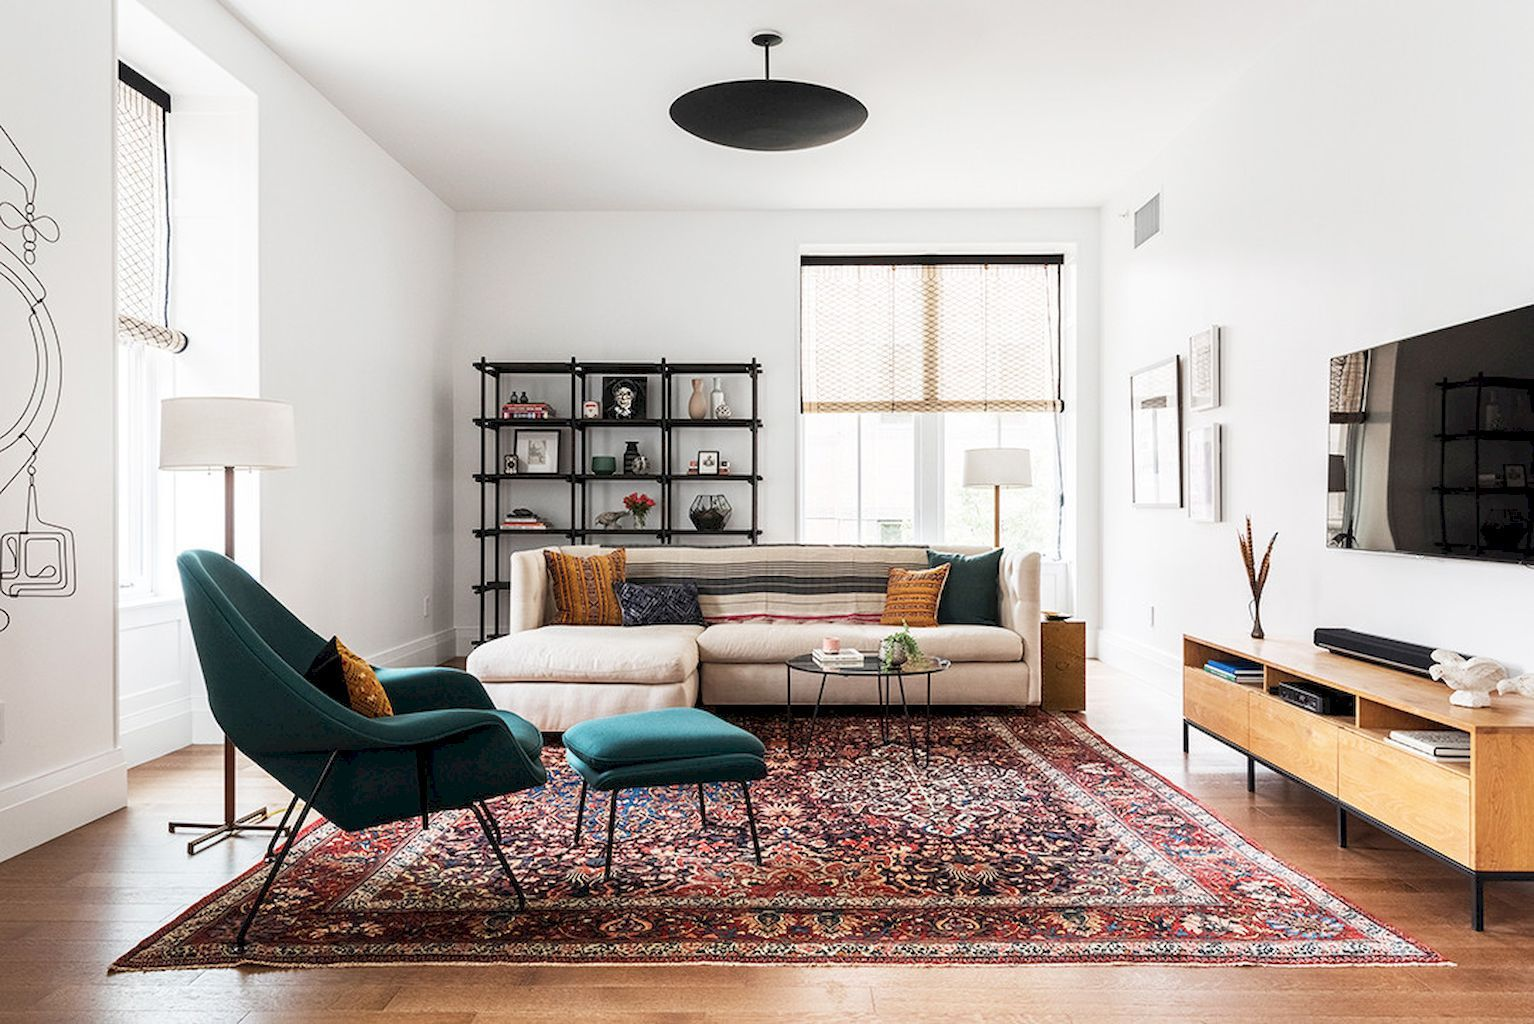 Stunning small living room decor ideas on a budget (4) | Houses ...